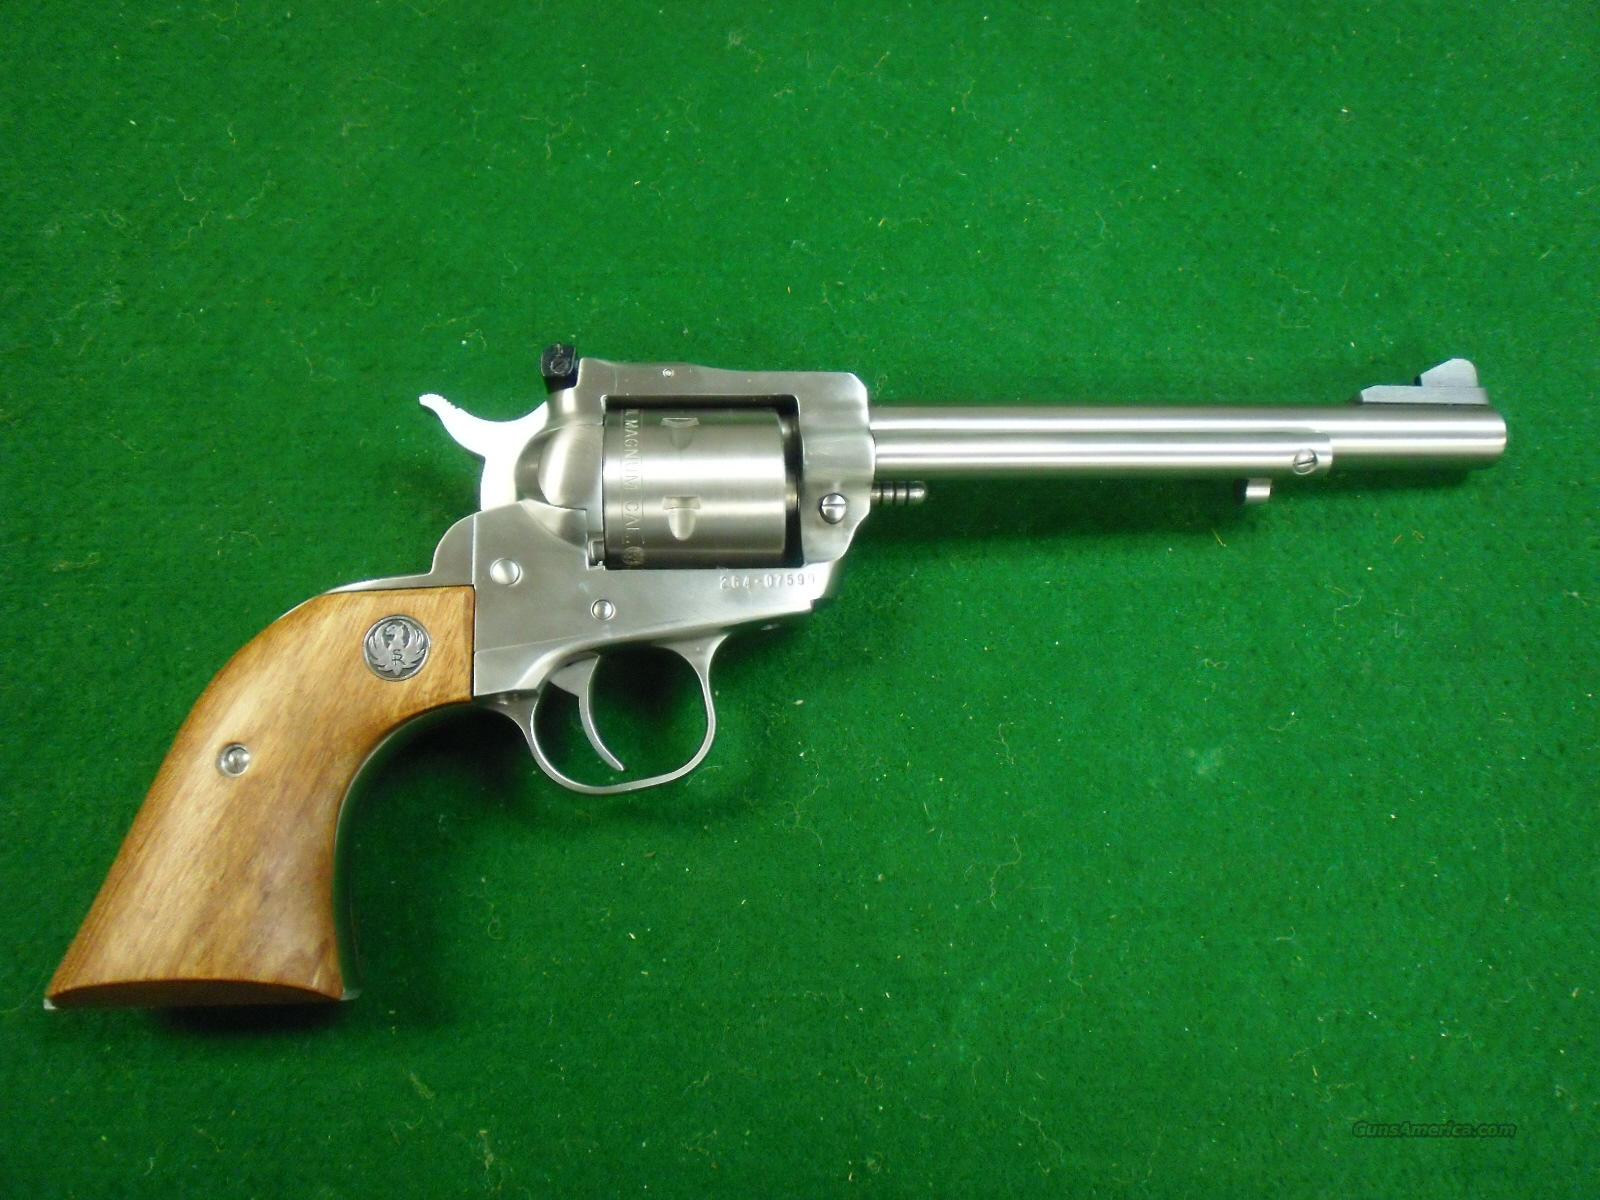 Ruger Single Six, 22 WRM, Stainless  Guns > Pistols > Ruger Single Action Revolvers > Single Six Type